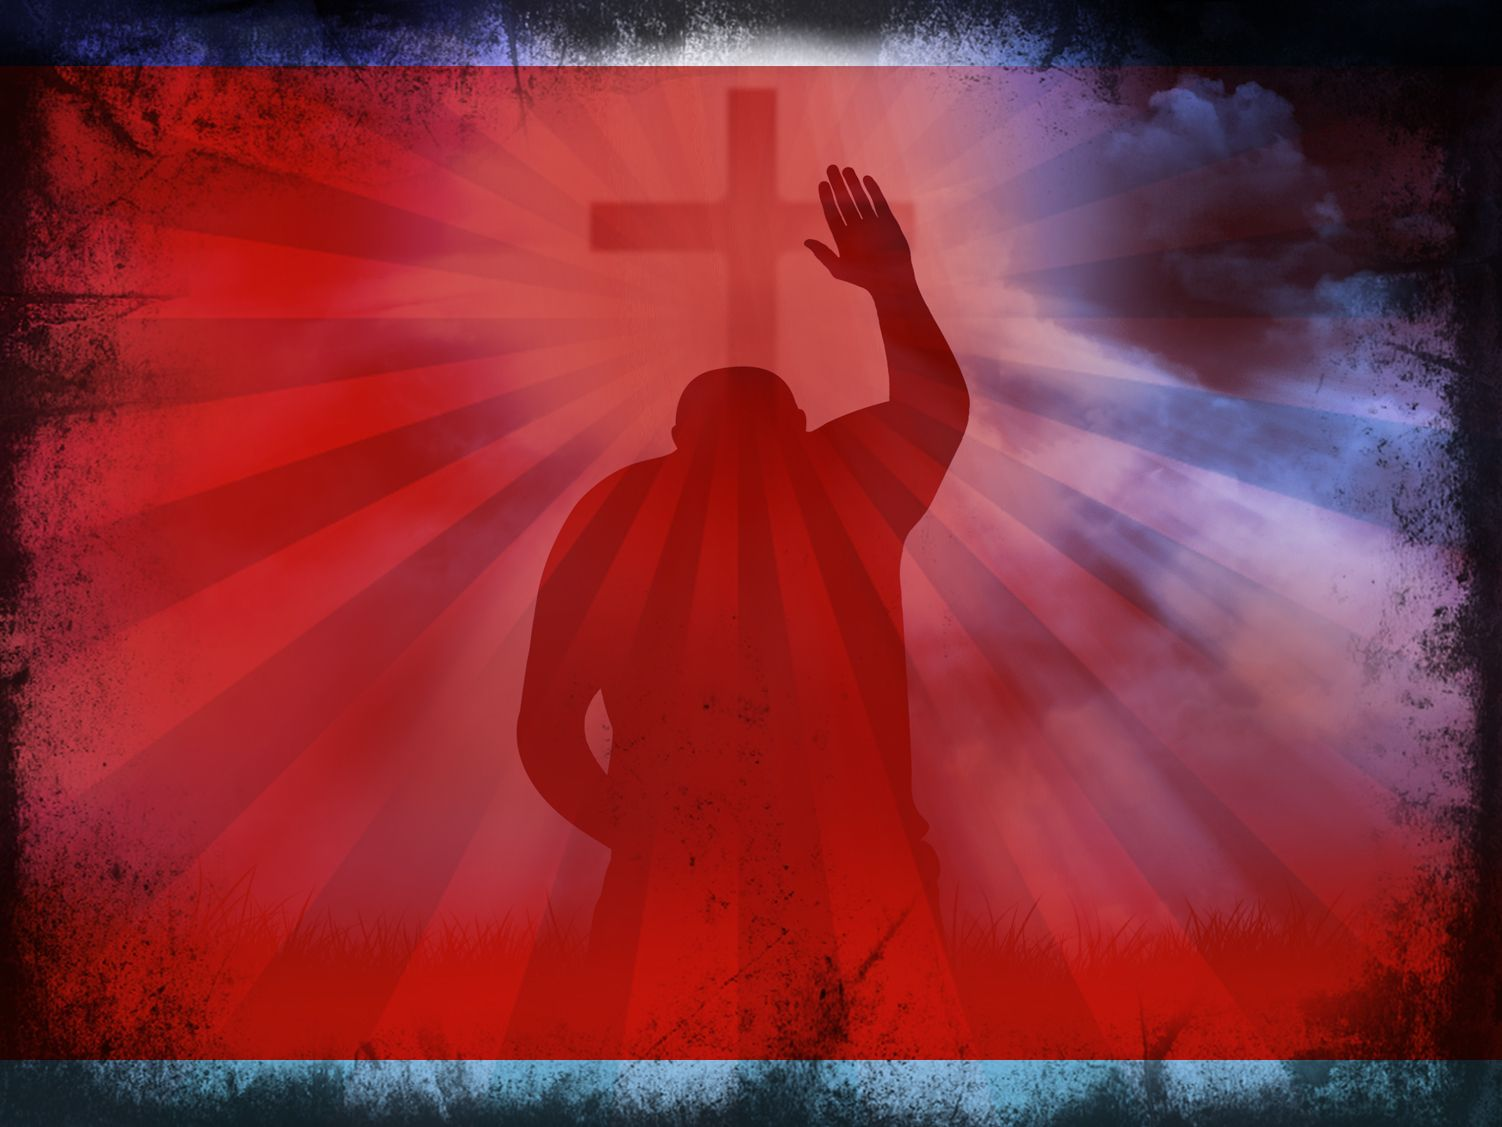 YOU ARE NOW COVERED BY THE BLOOD OF THE LAMB